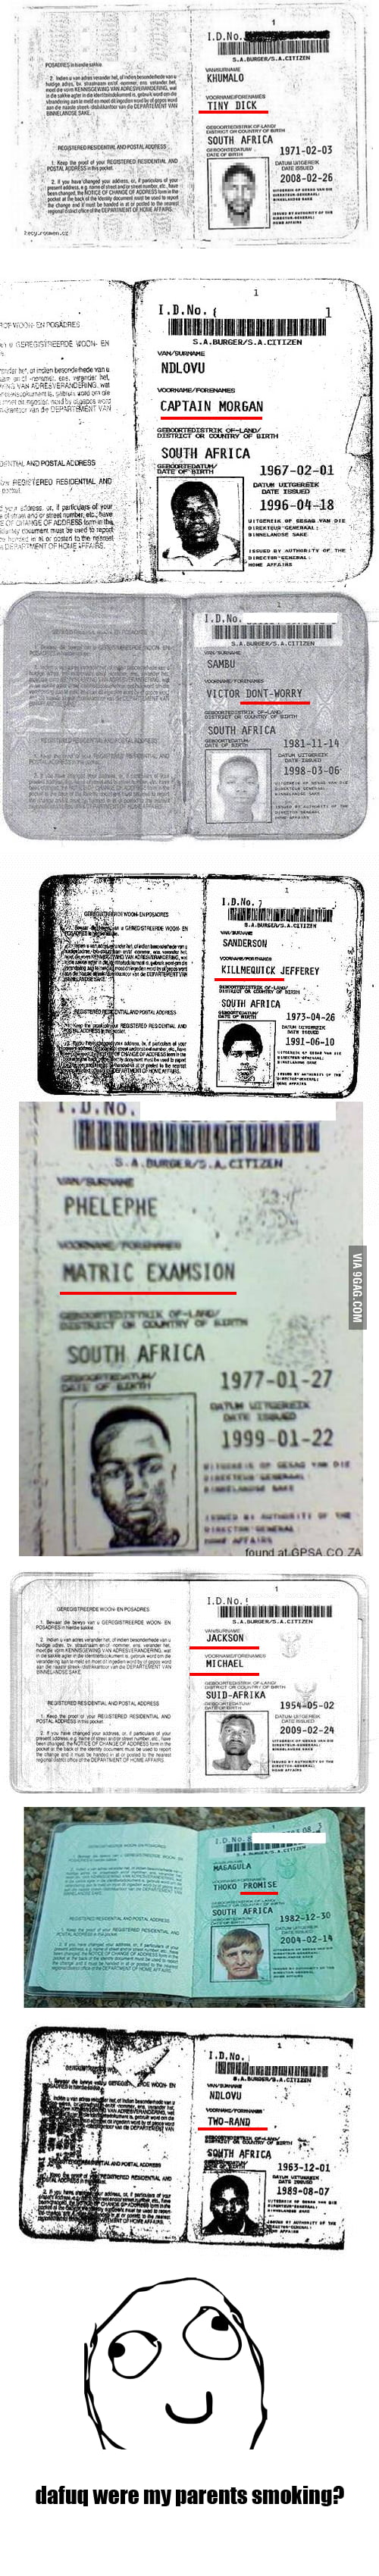 Meanwhile in South Africa...